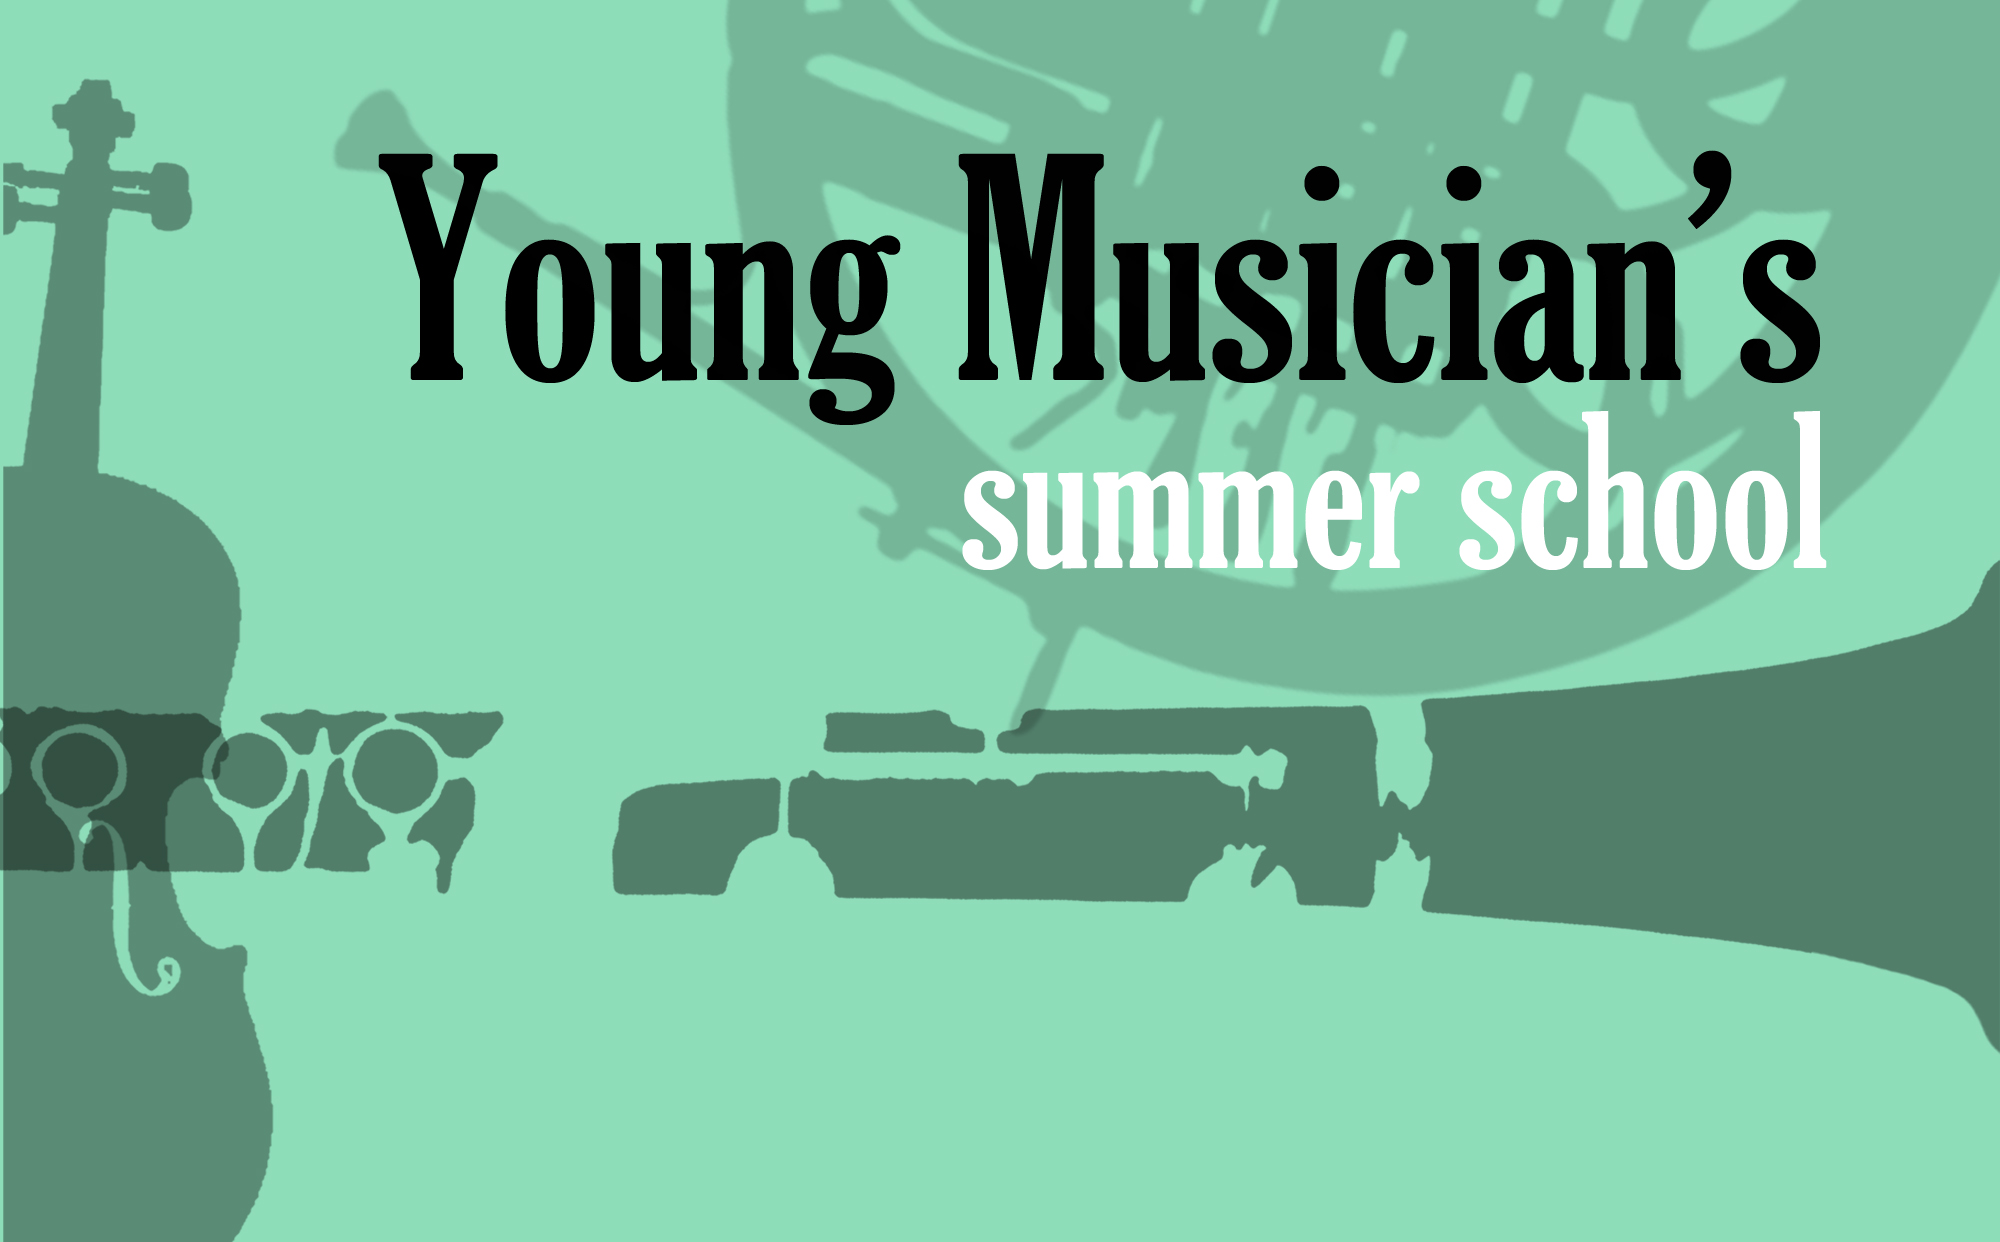 4209Young Musician's Summer School